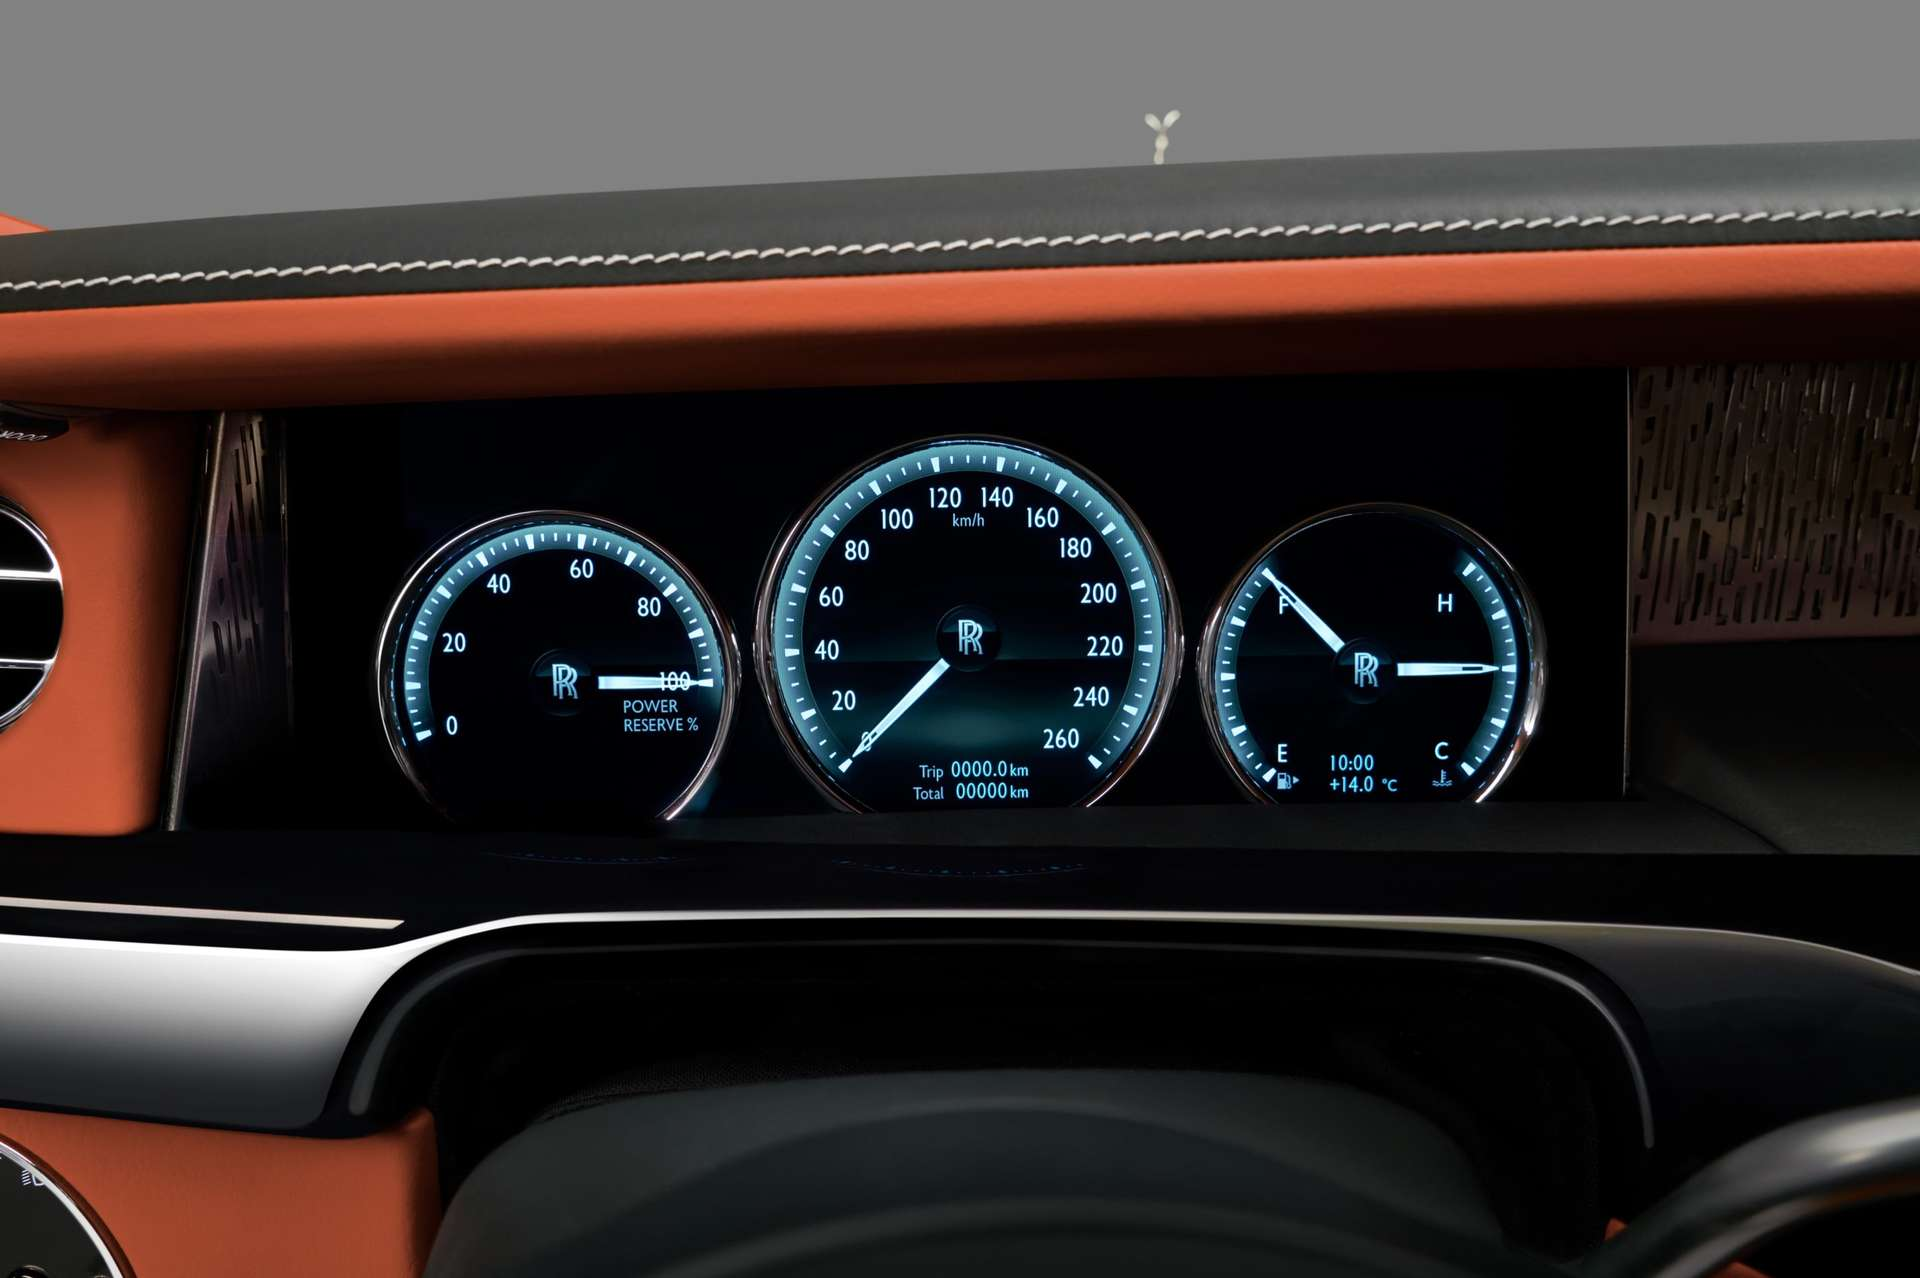 The digital dials found in the Rolls-Royce Phantom standard wheelbase.